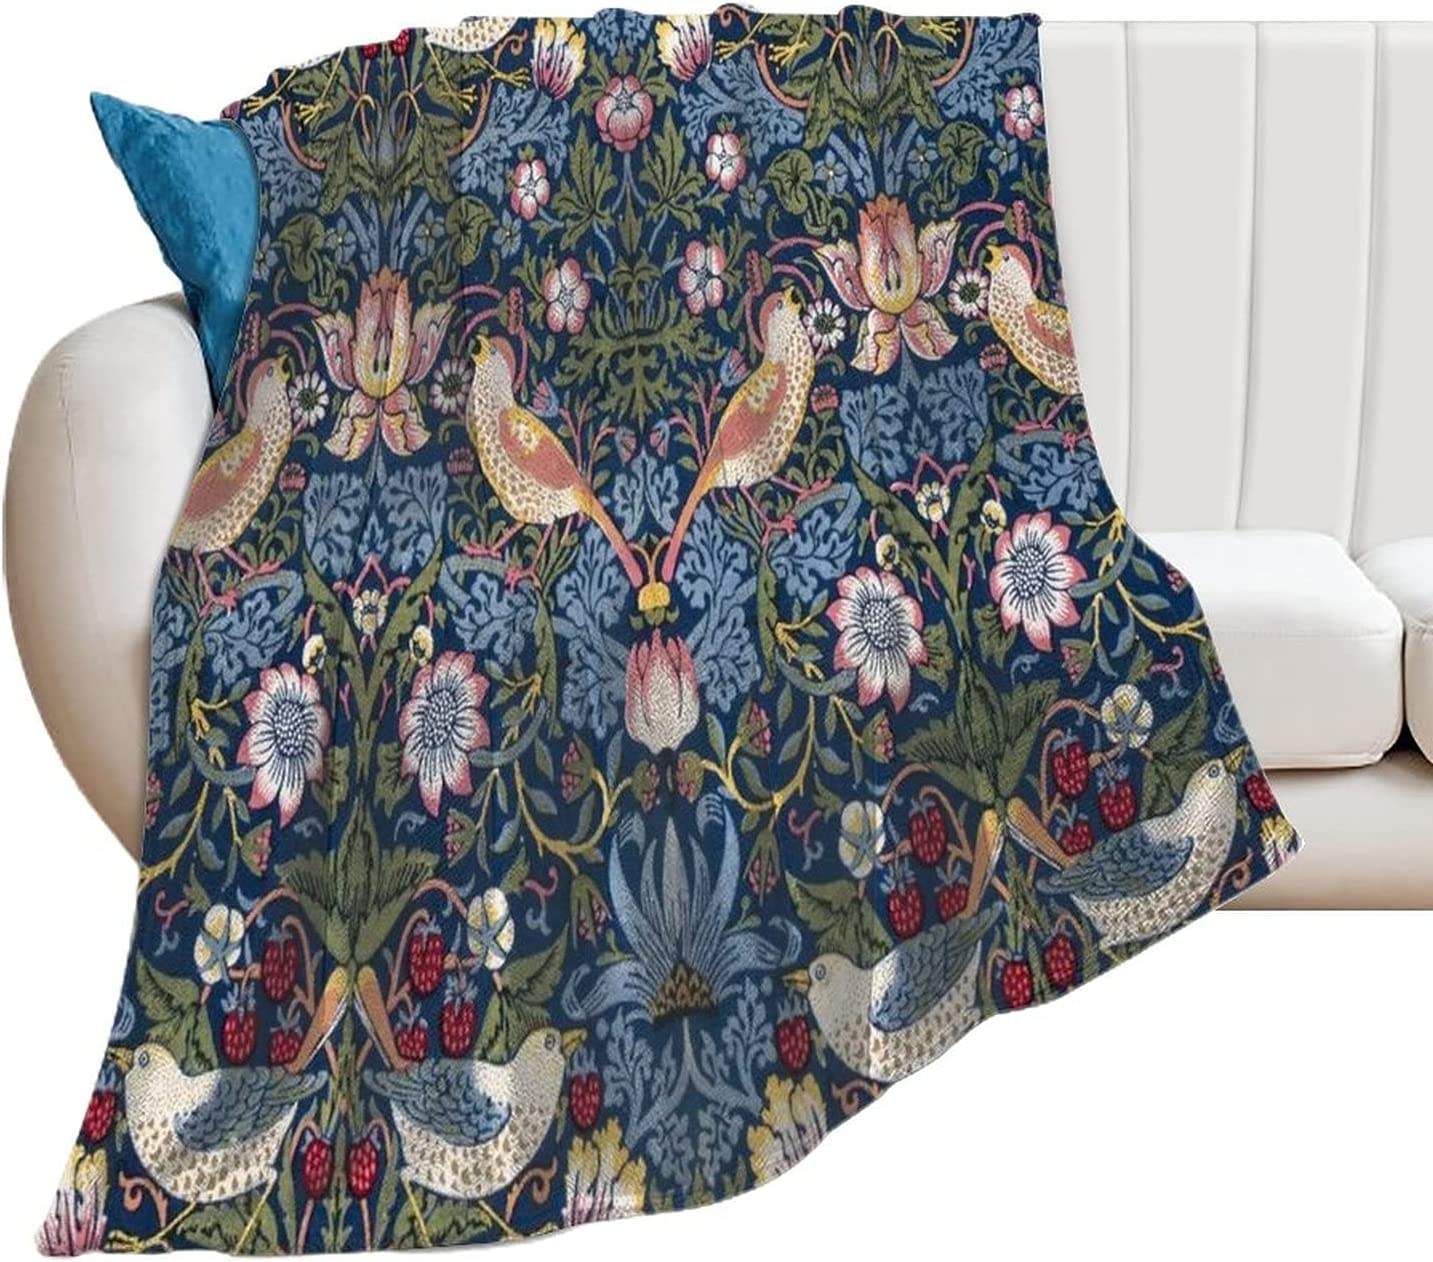 GOUTUO Blanket Plant and Animal New Free Shipping Pattern Design Graphic Customize San Francisco Mall